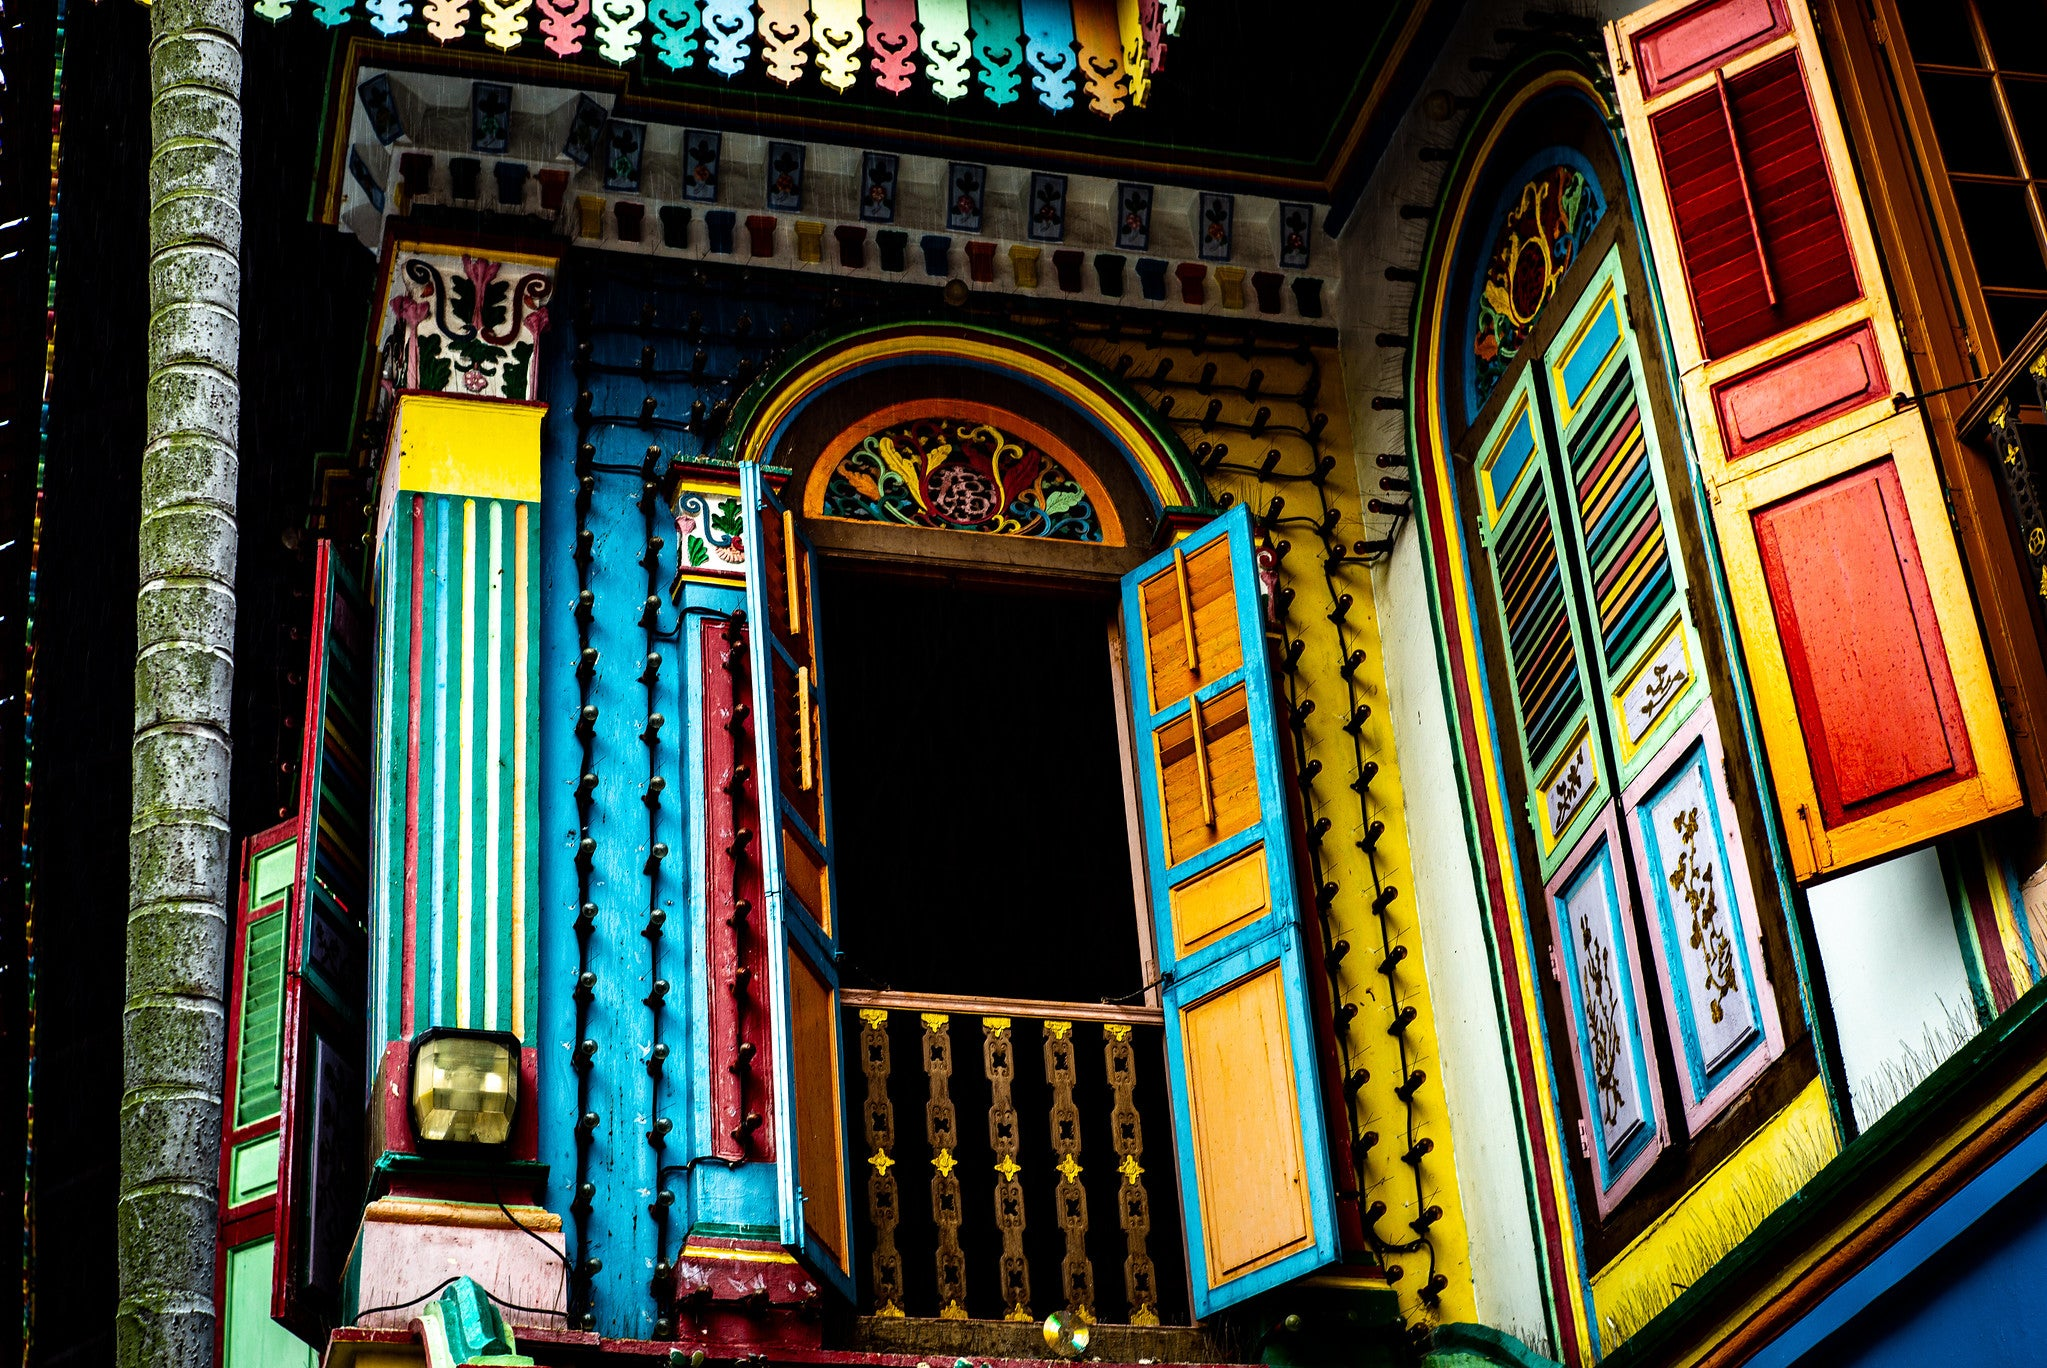 House of Tan Teng Niah by Lezlie (Flickr)